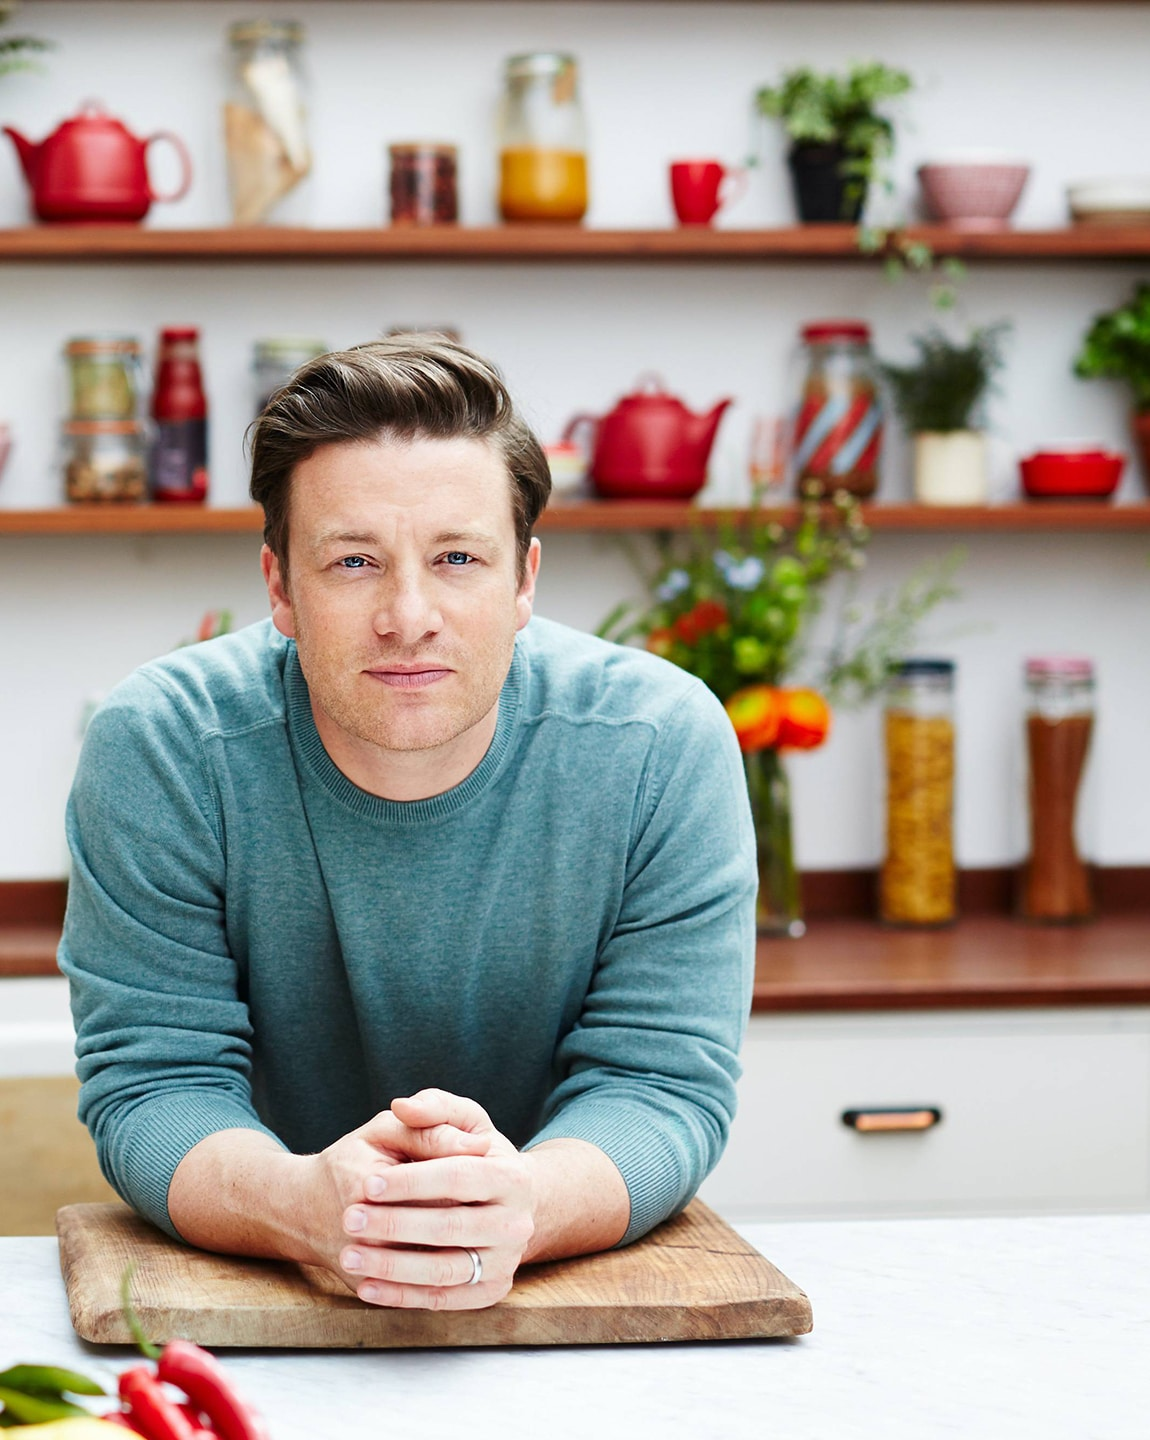 Jamie Oliver in action image